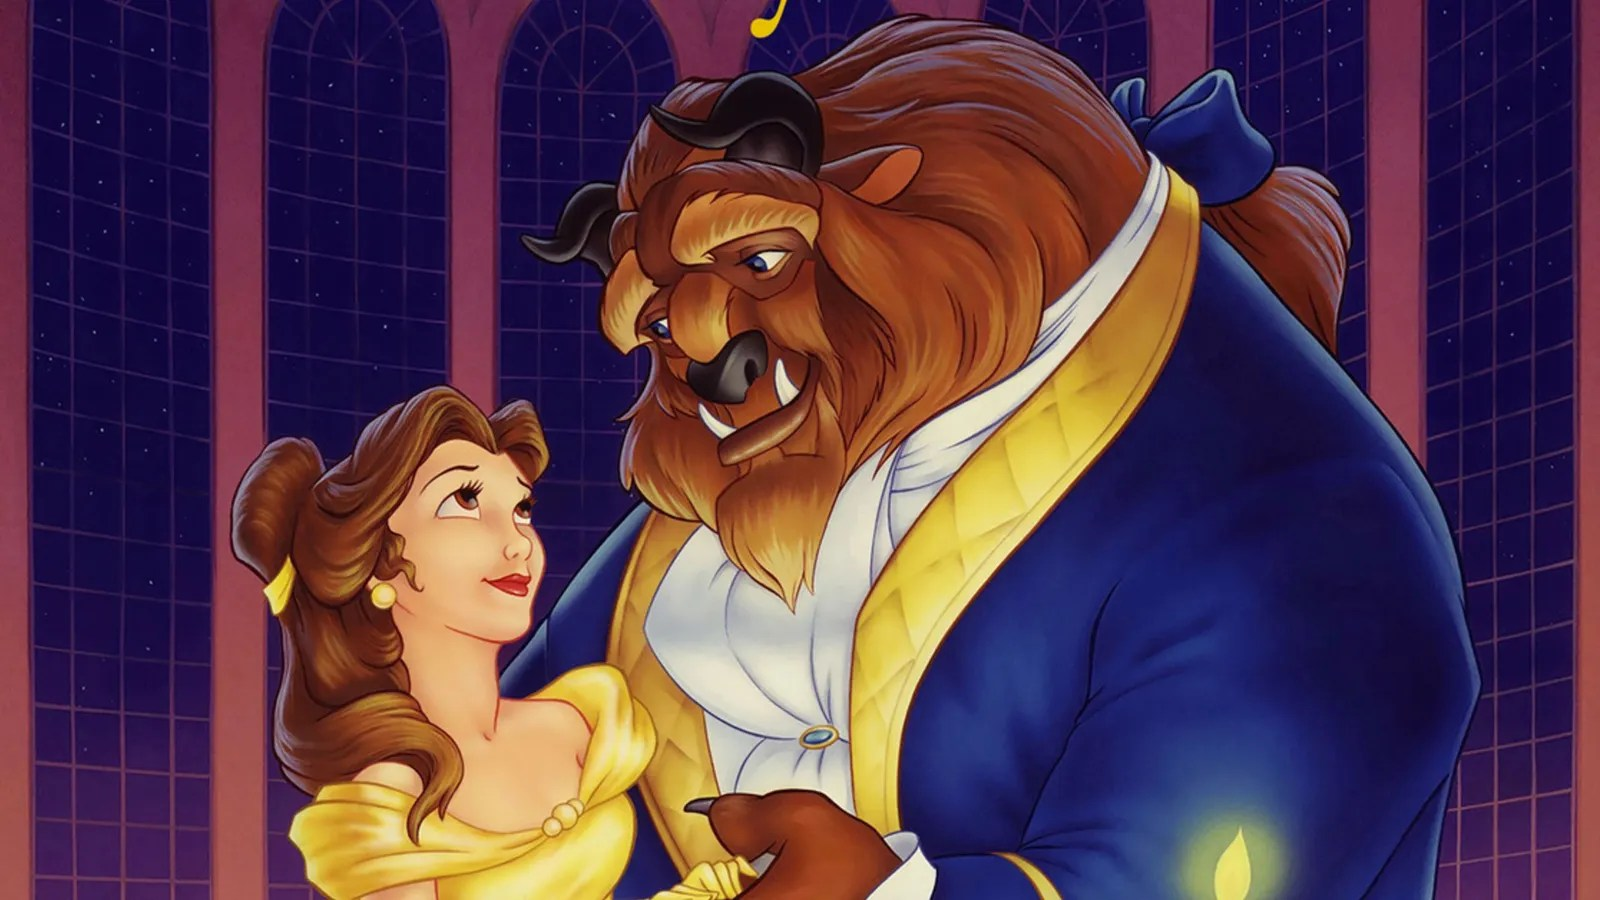 The Animated Beauty And The Beast Remains A Near Perfect